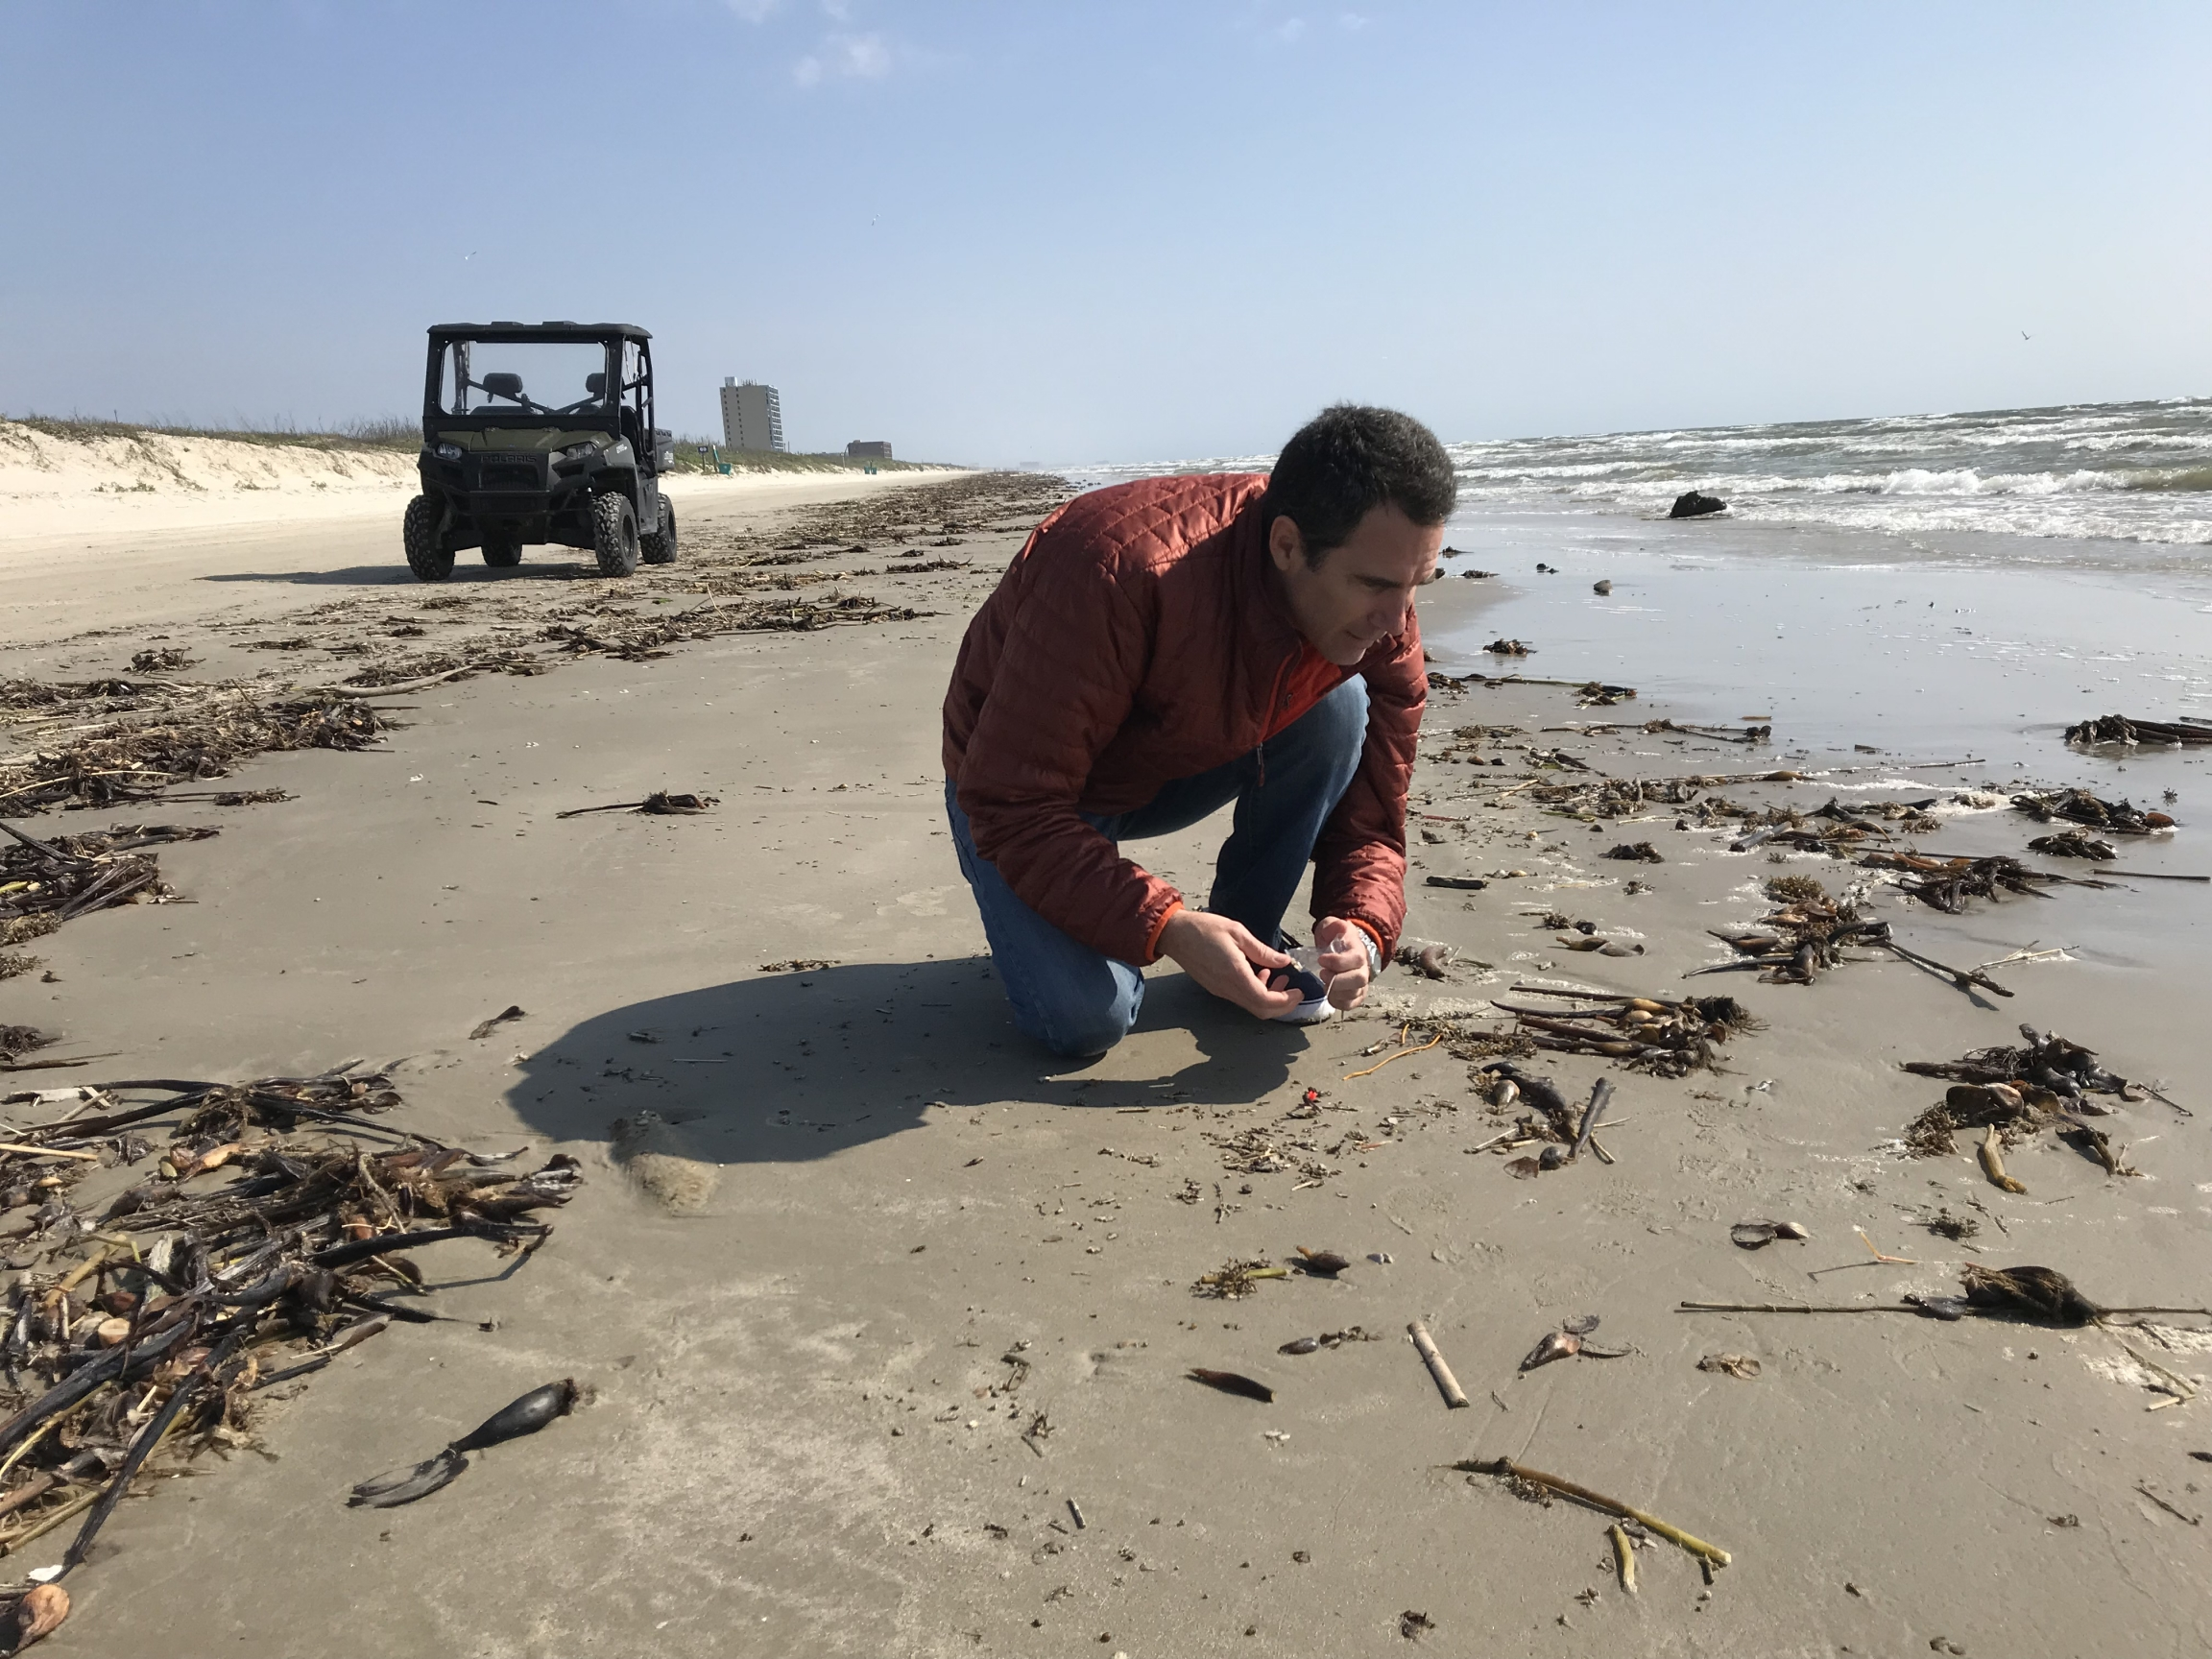 A man looks for micro-plastics on the beach.